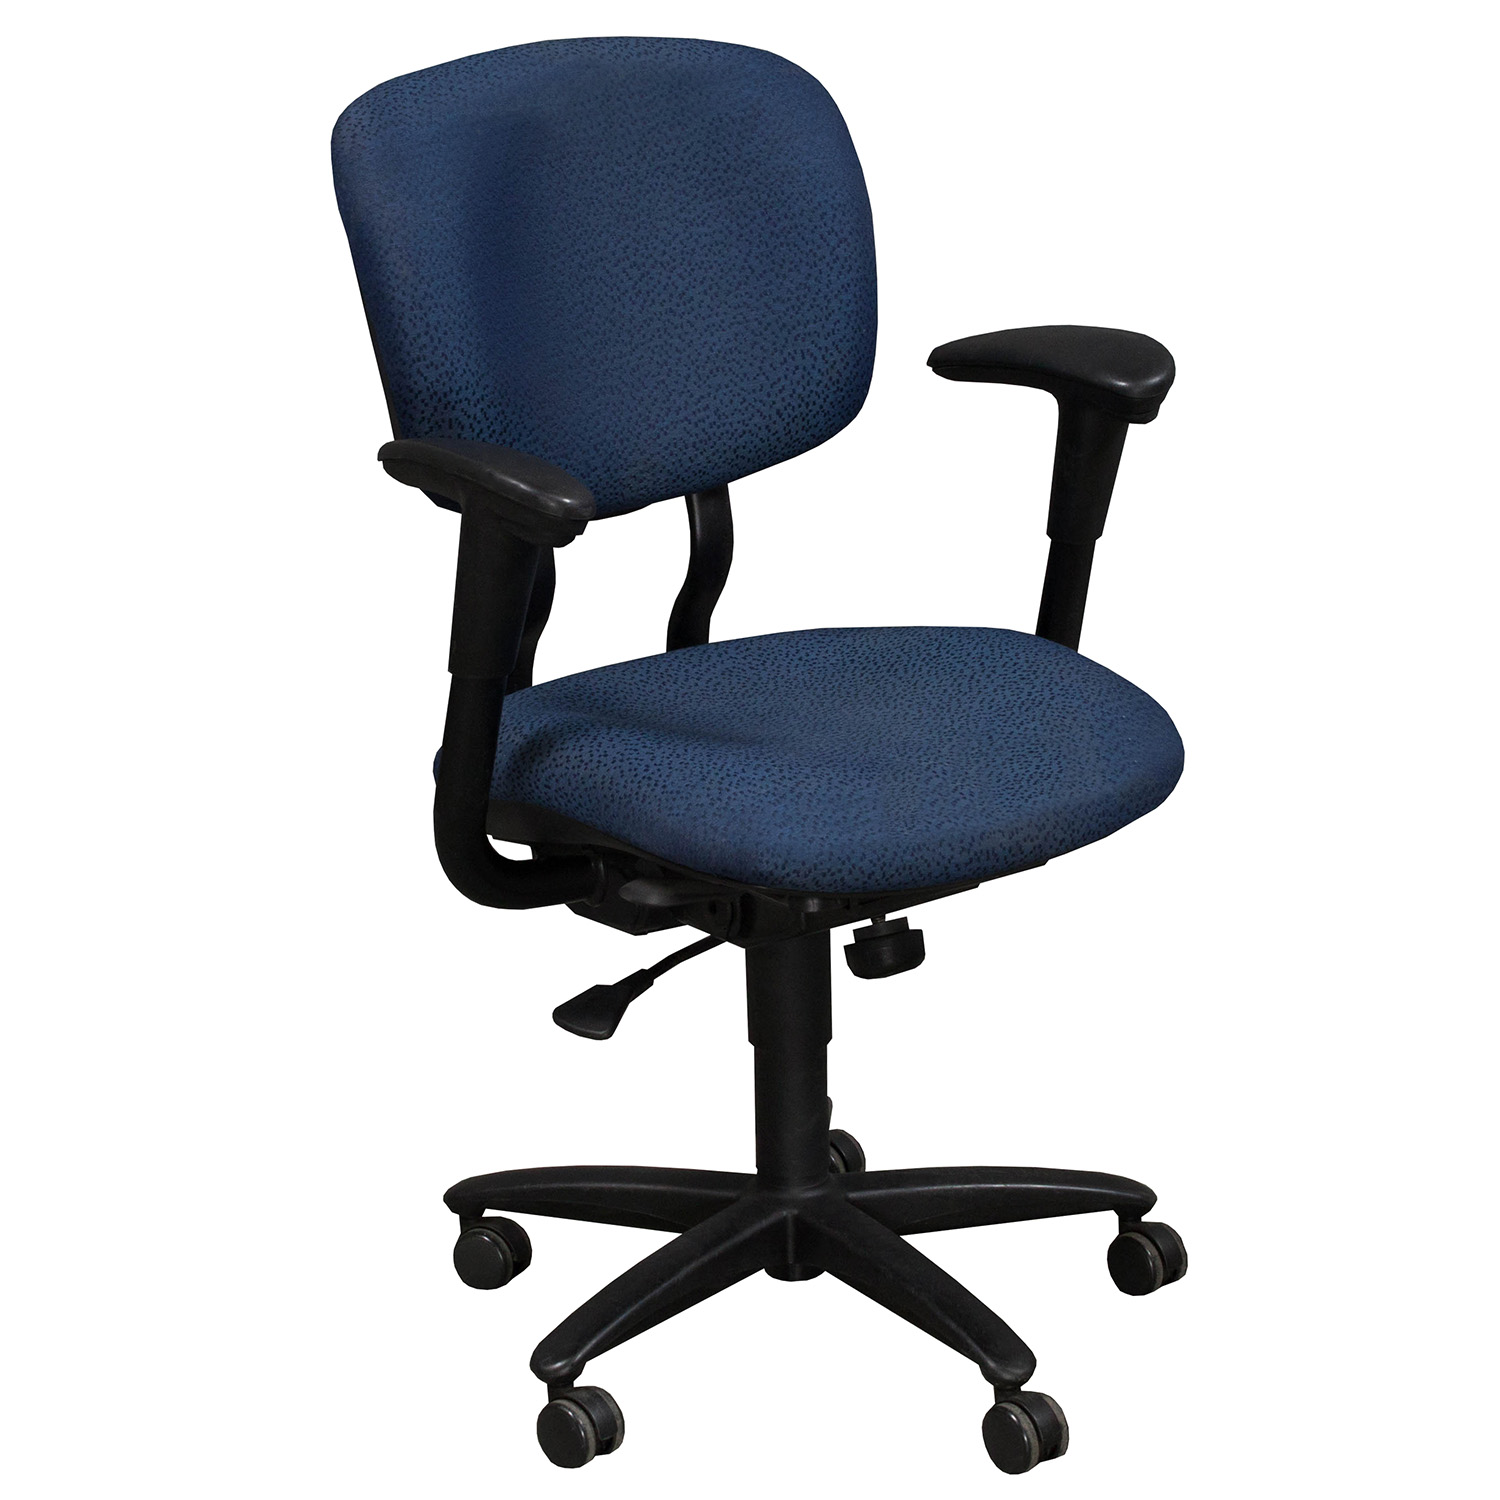 blue office chair cozzia massage review haworth improv desk used task national